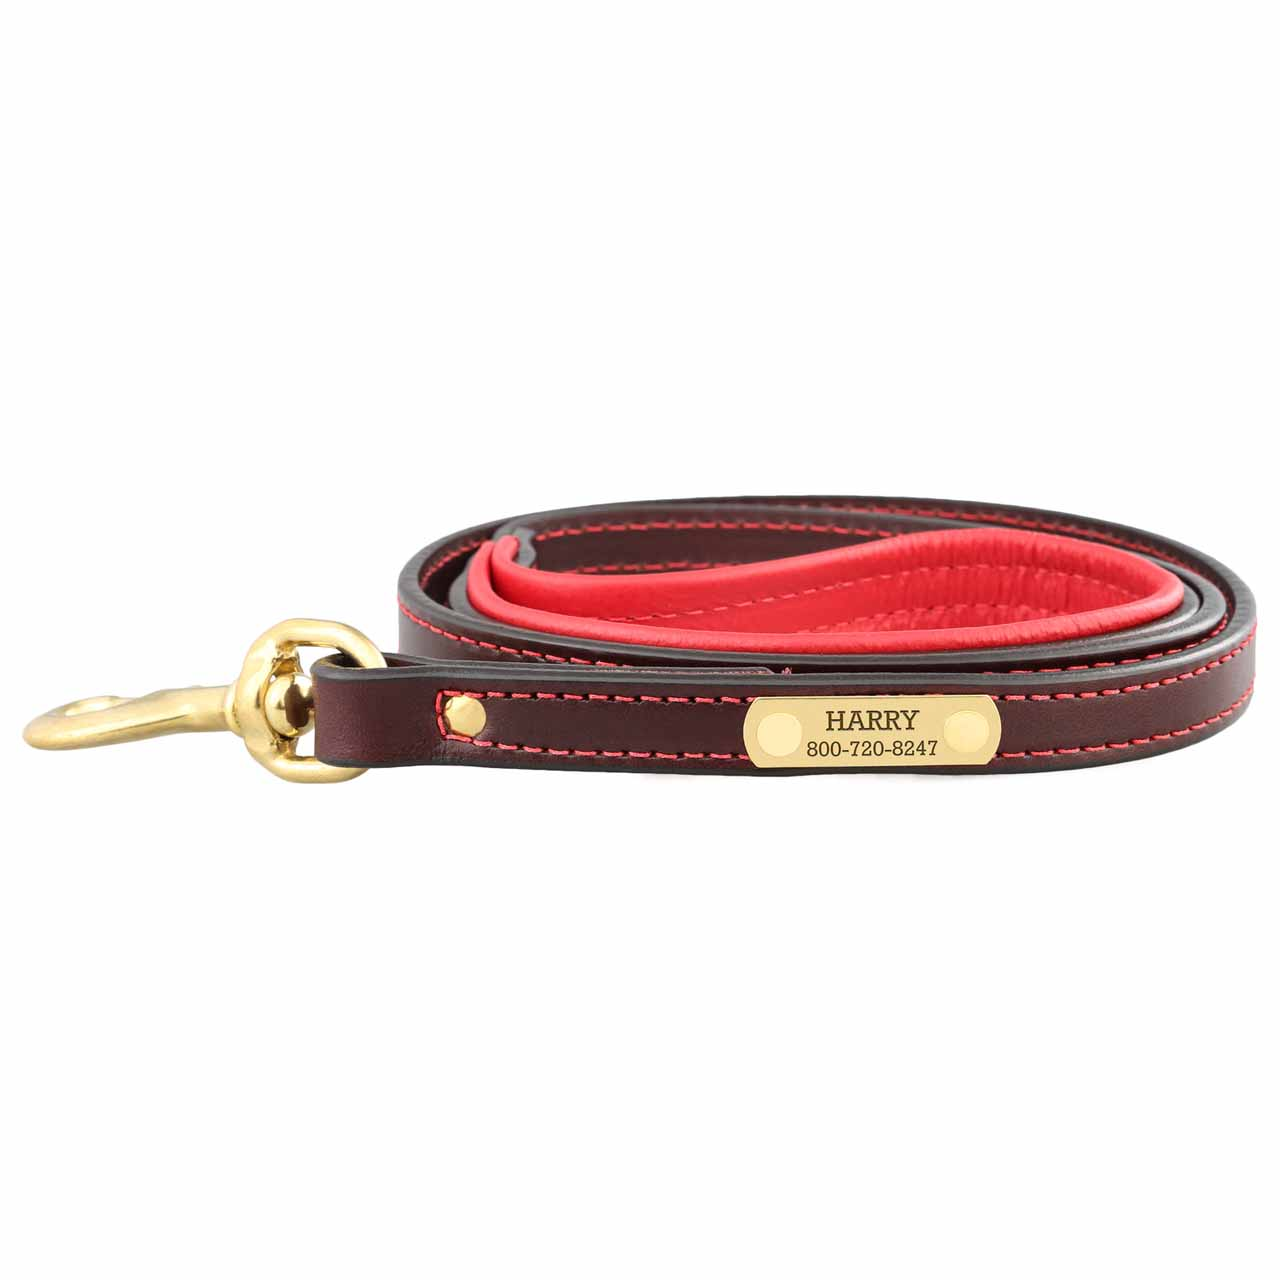 Padded Leather Leash with Nameplate - Brown with Red